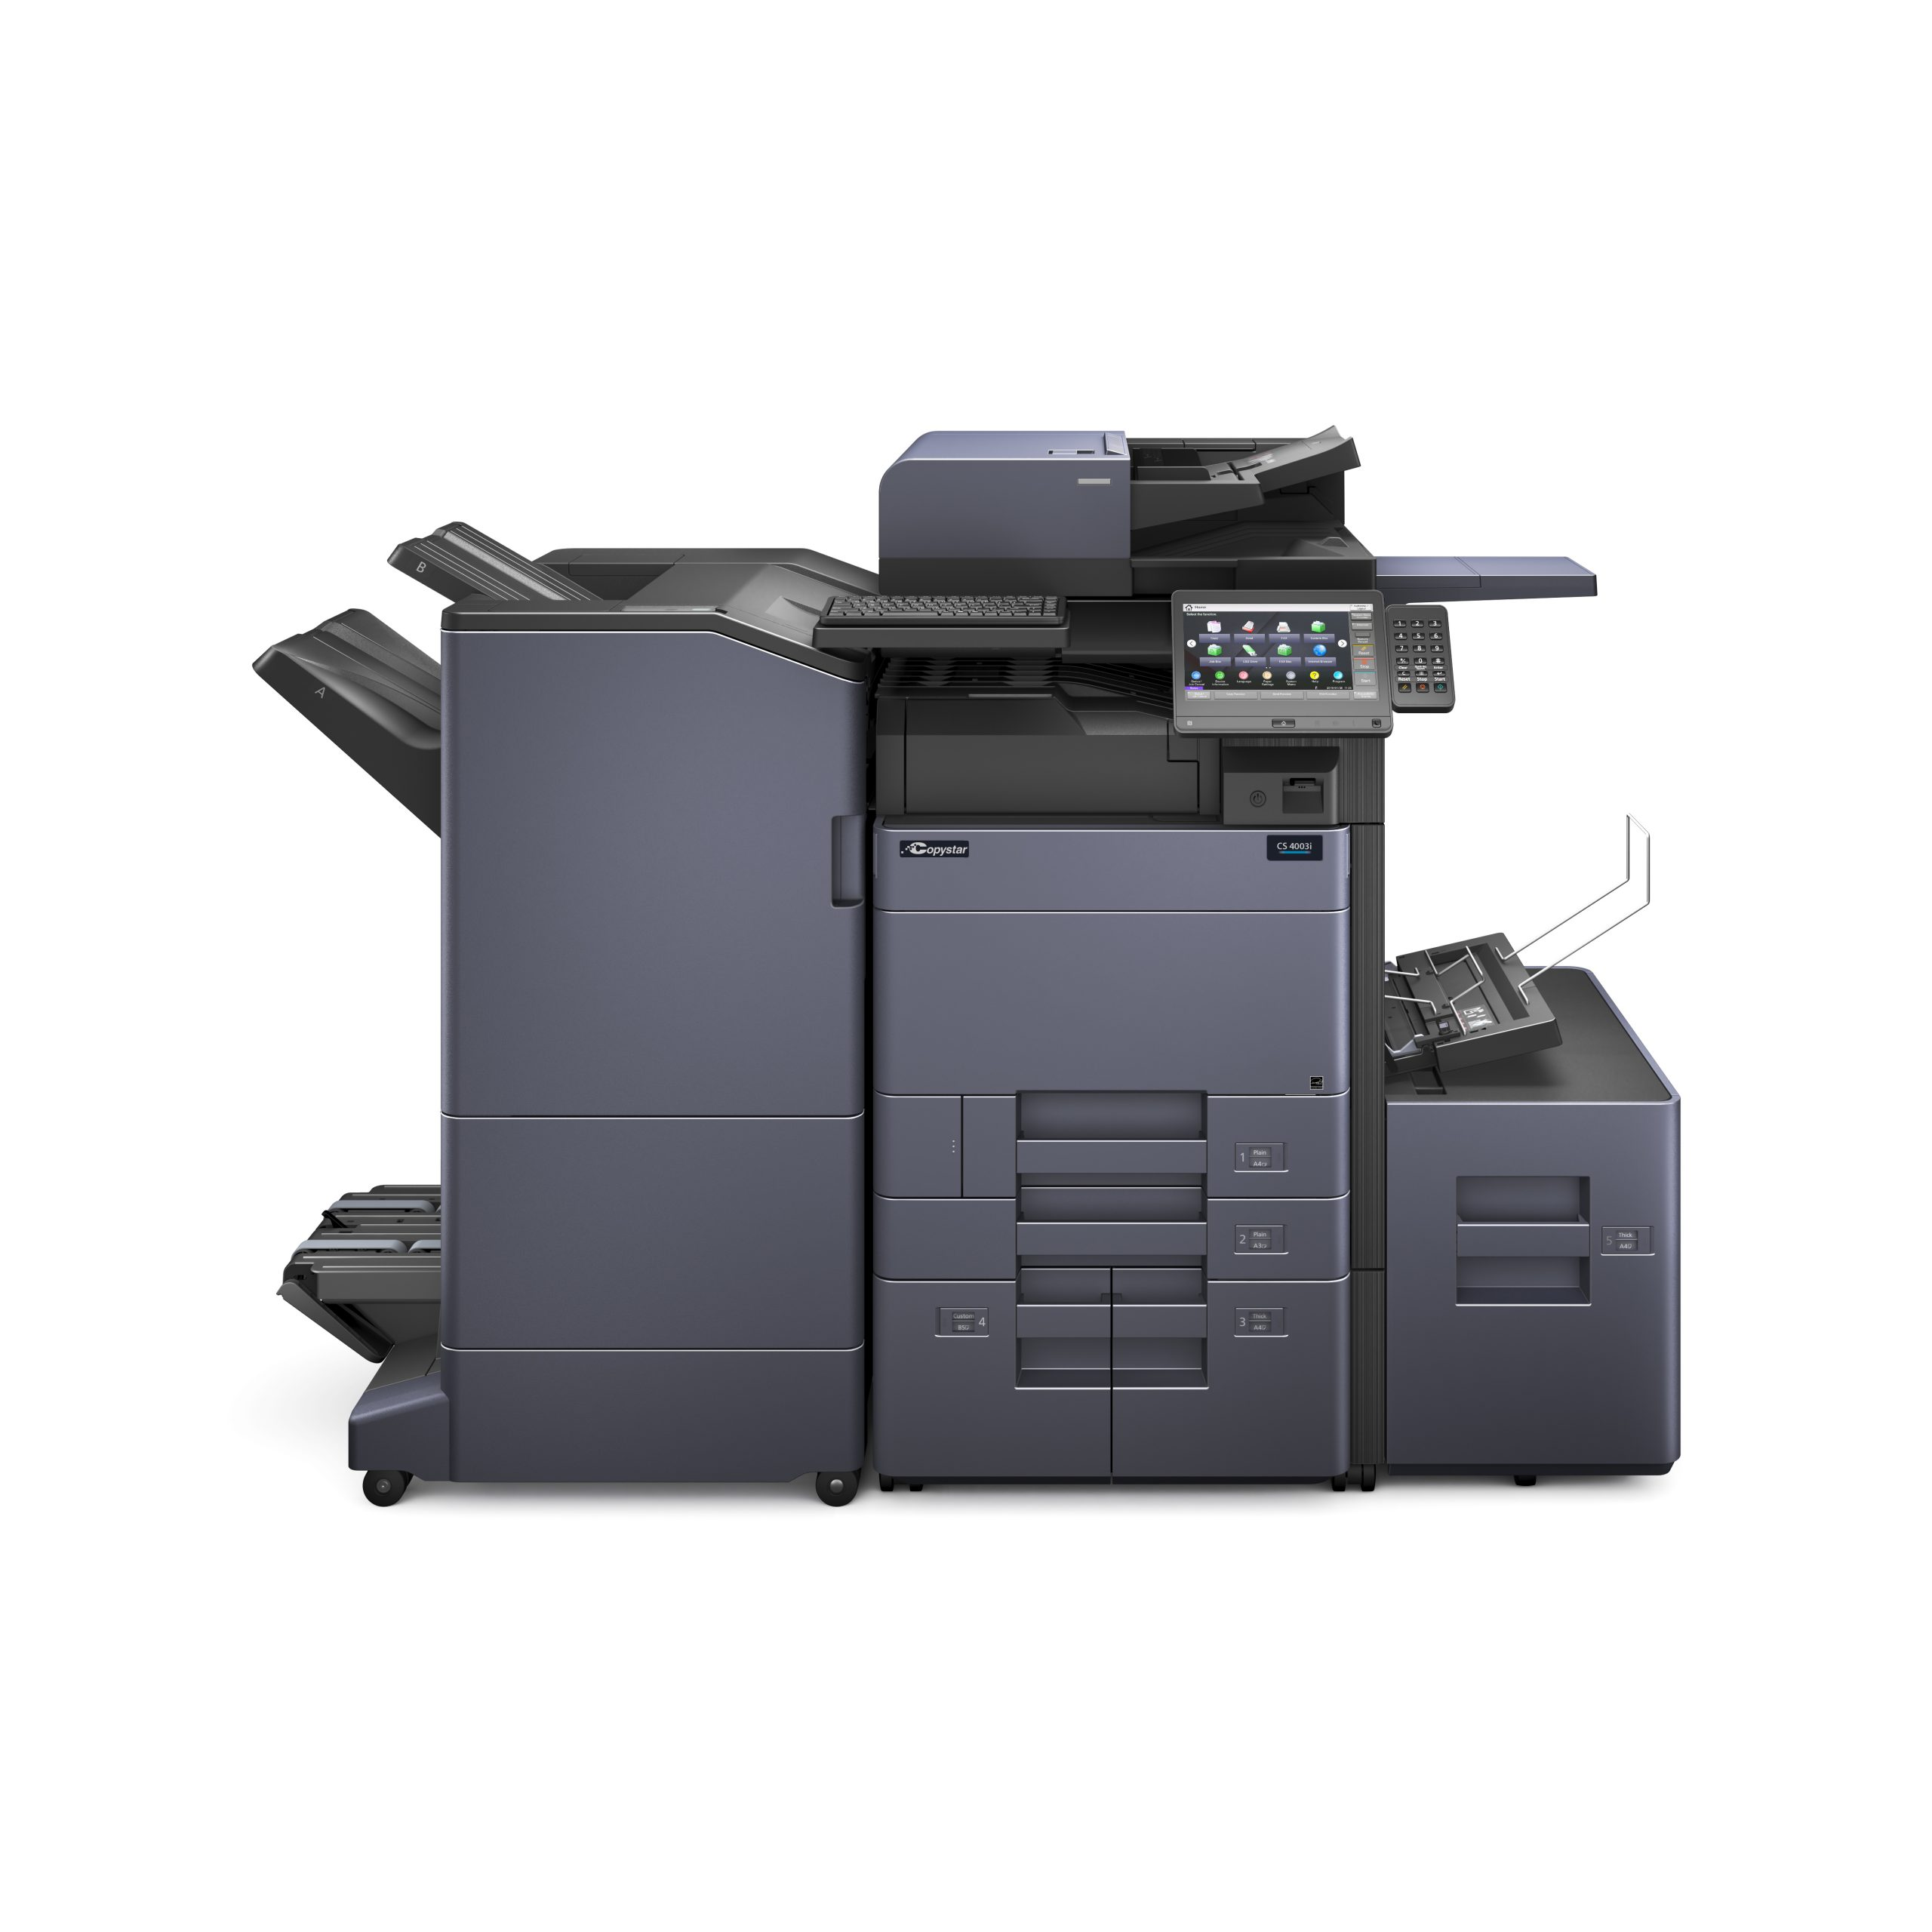 kyocera CS_4003i Lease Printer Copier Scanner Fax Minnesota